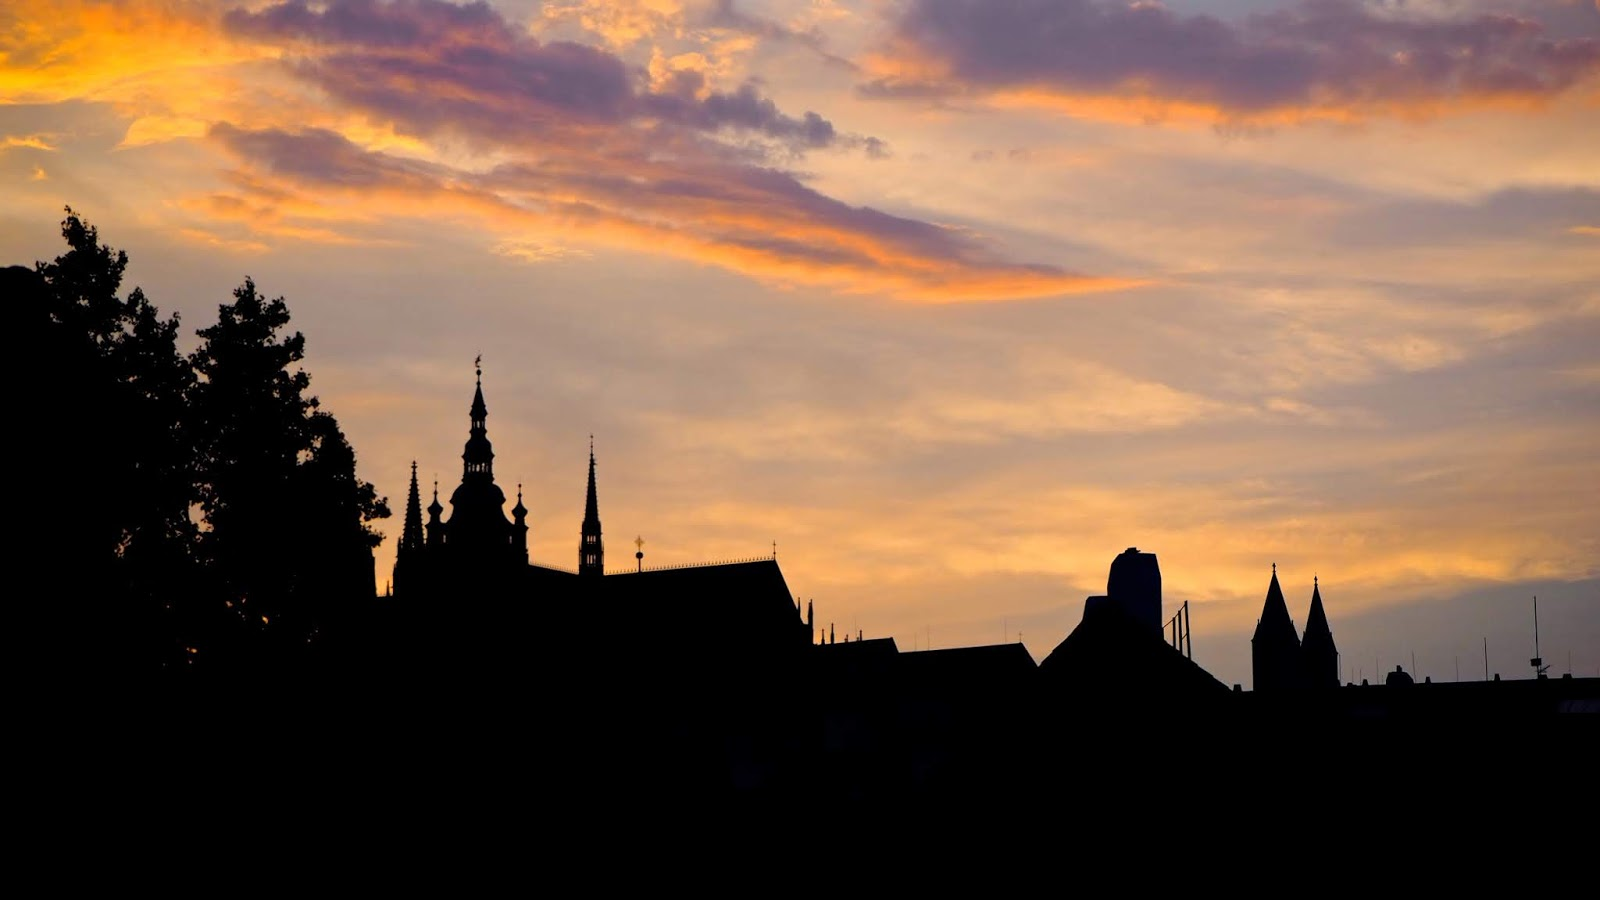 Colourful skies and the Prague Skyline in Silhouette during sunset